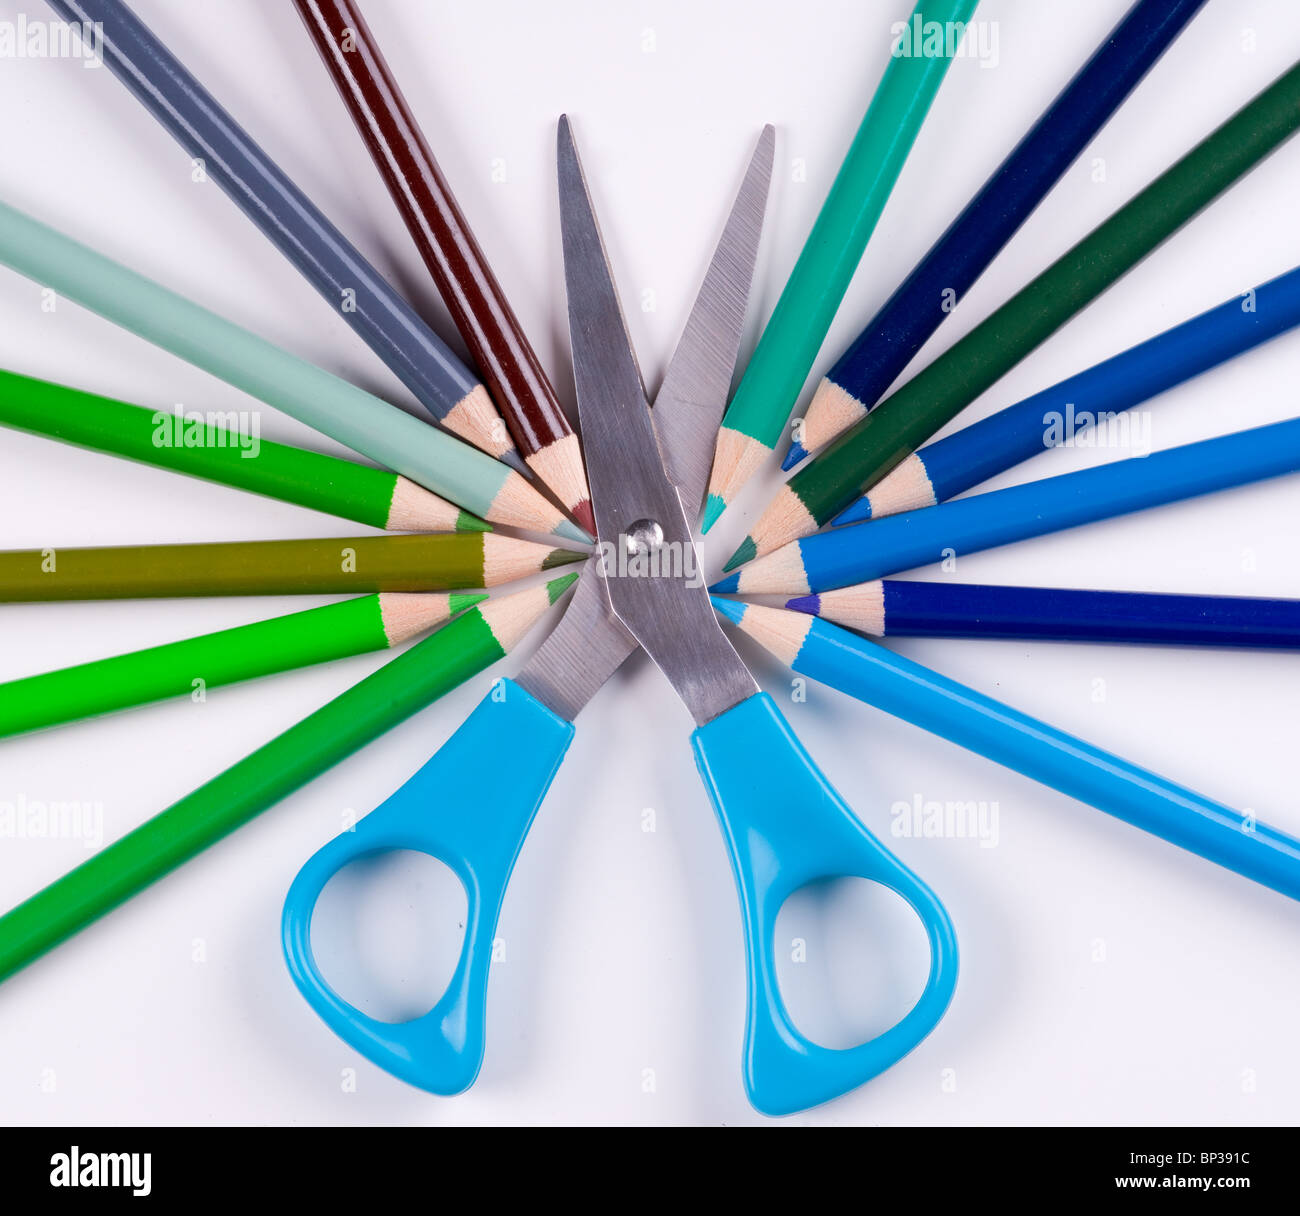 Blue scissors surrounded by the pencils of cool colors - Stock Image